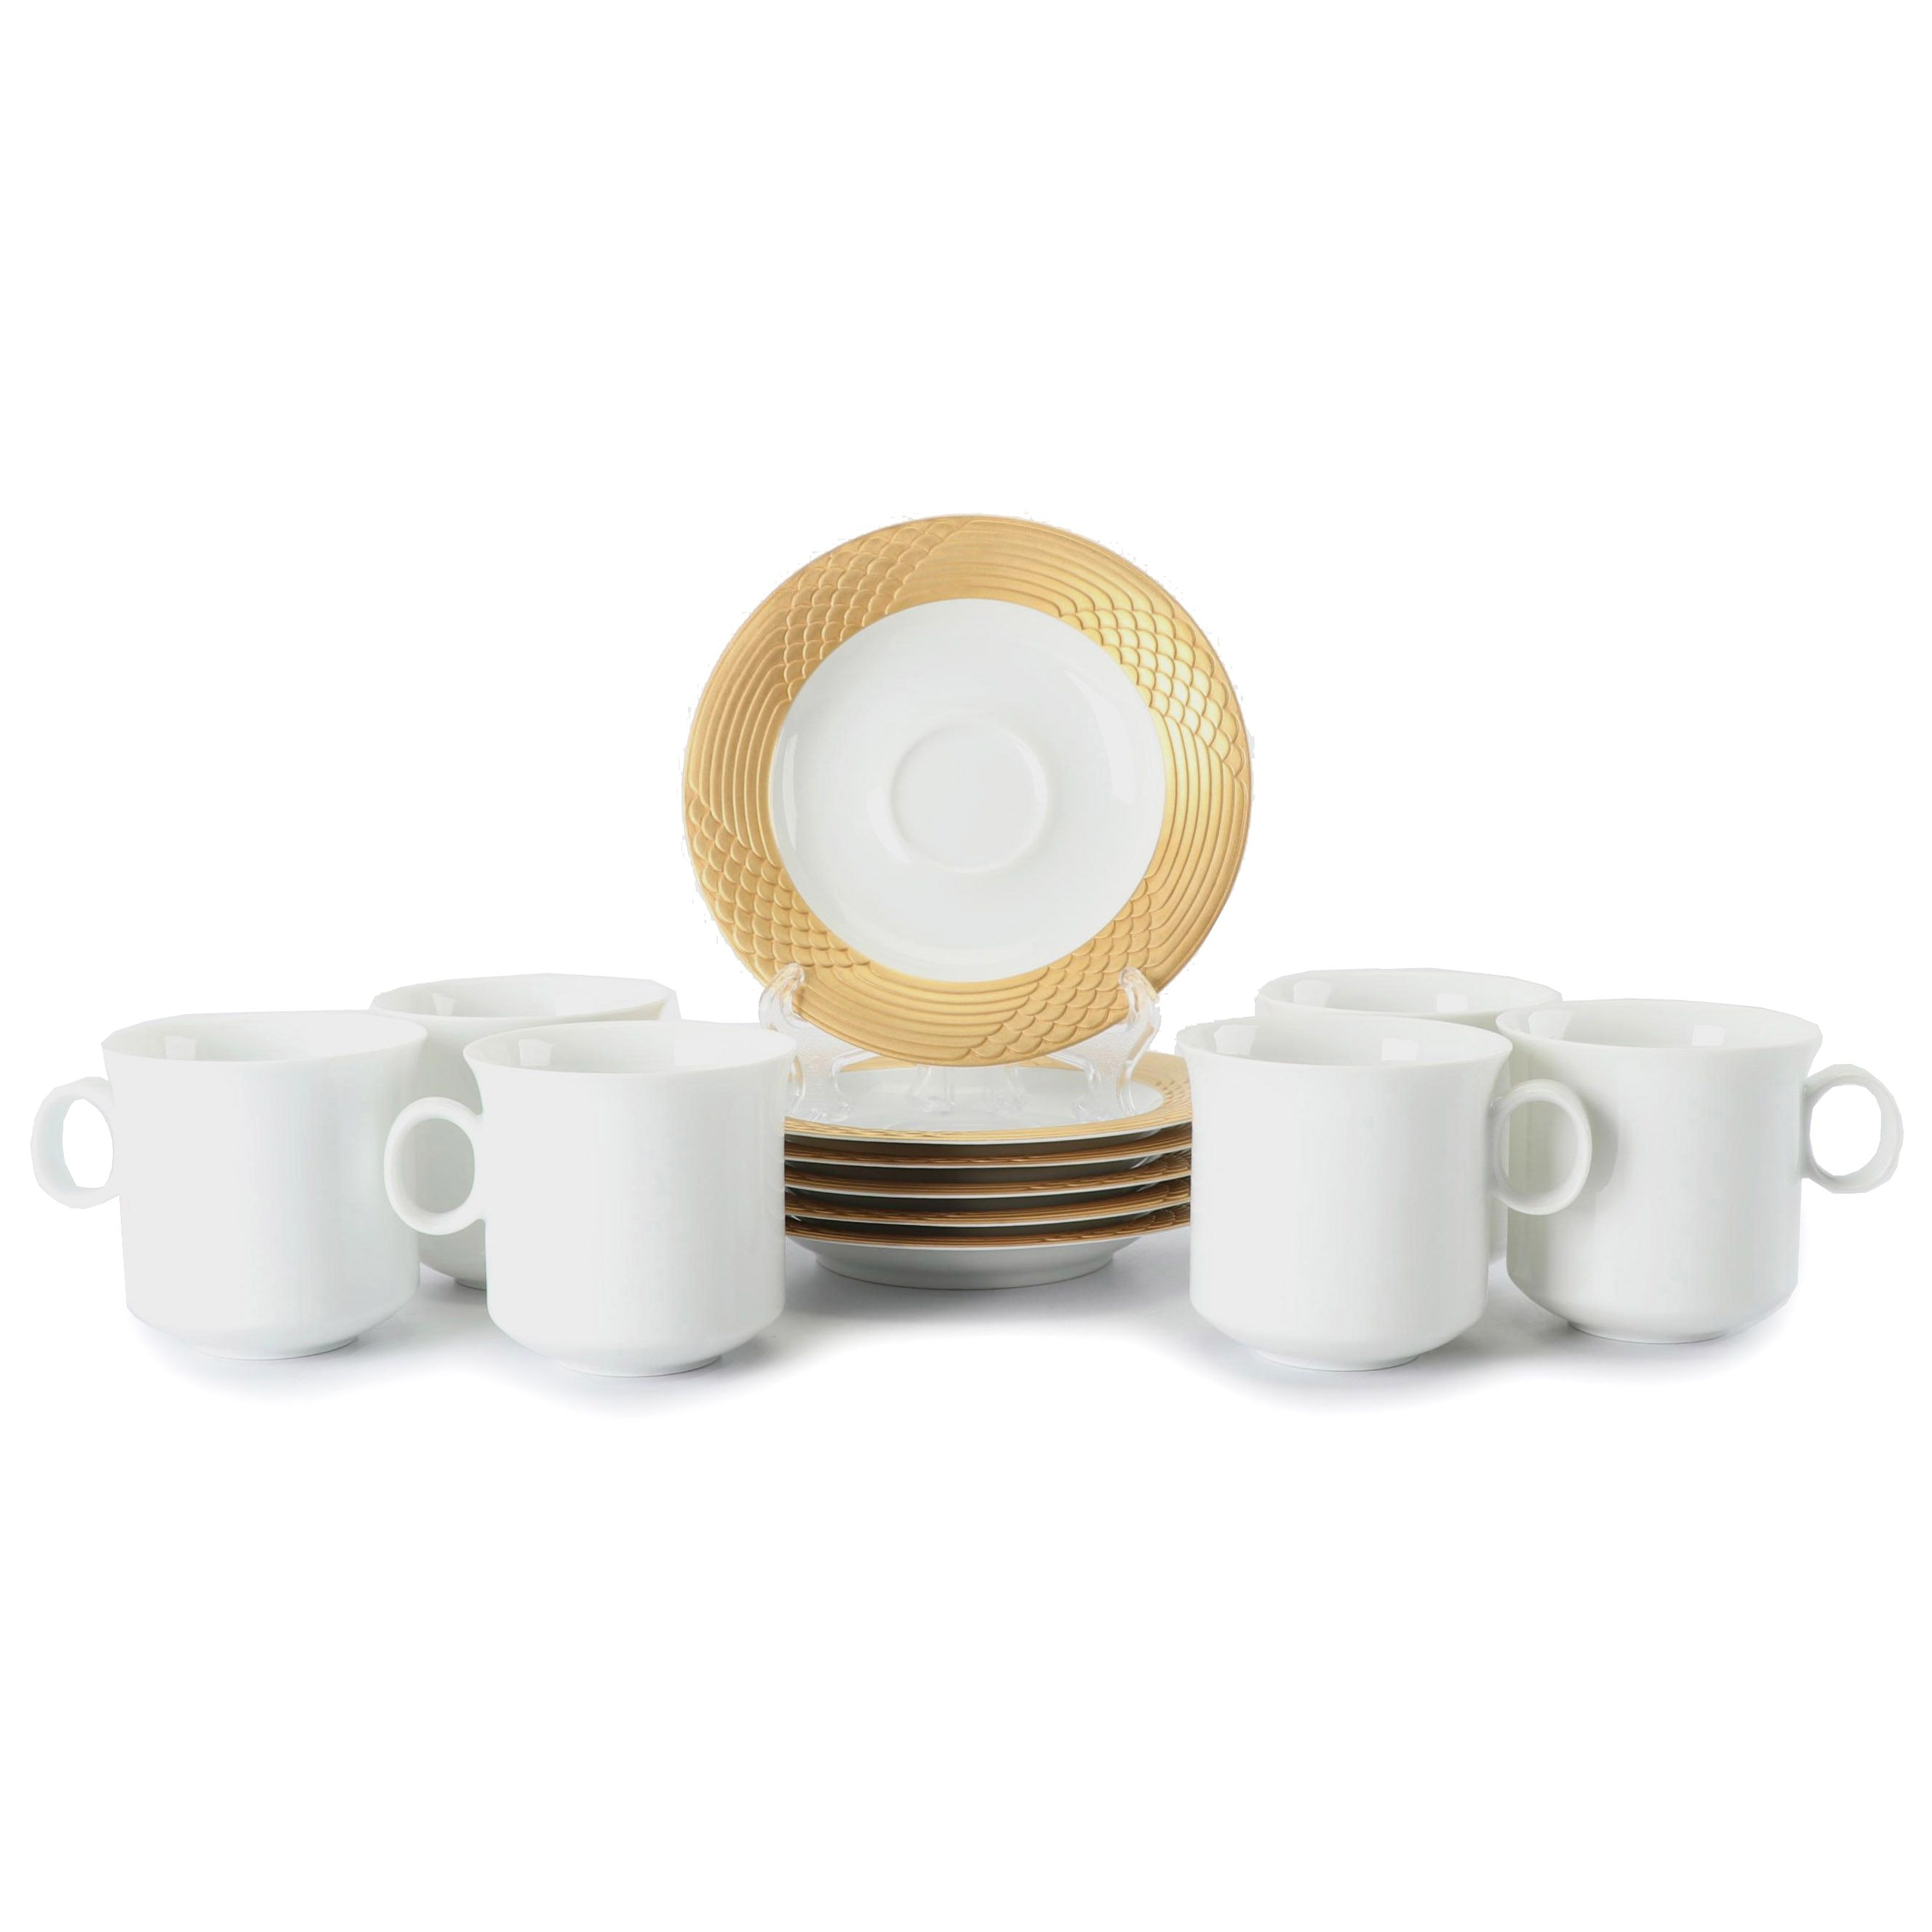 Hutschenreuther Porcelain Coffee Cups with Gilt Saucers